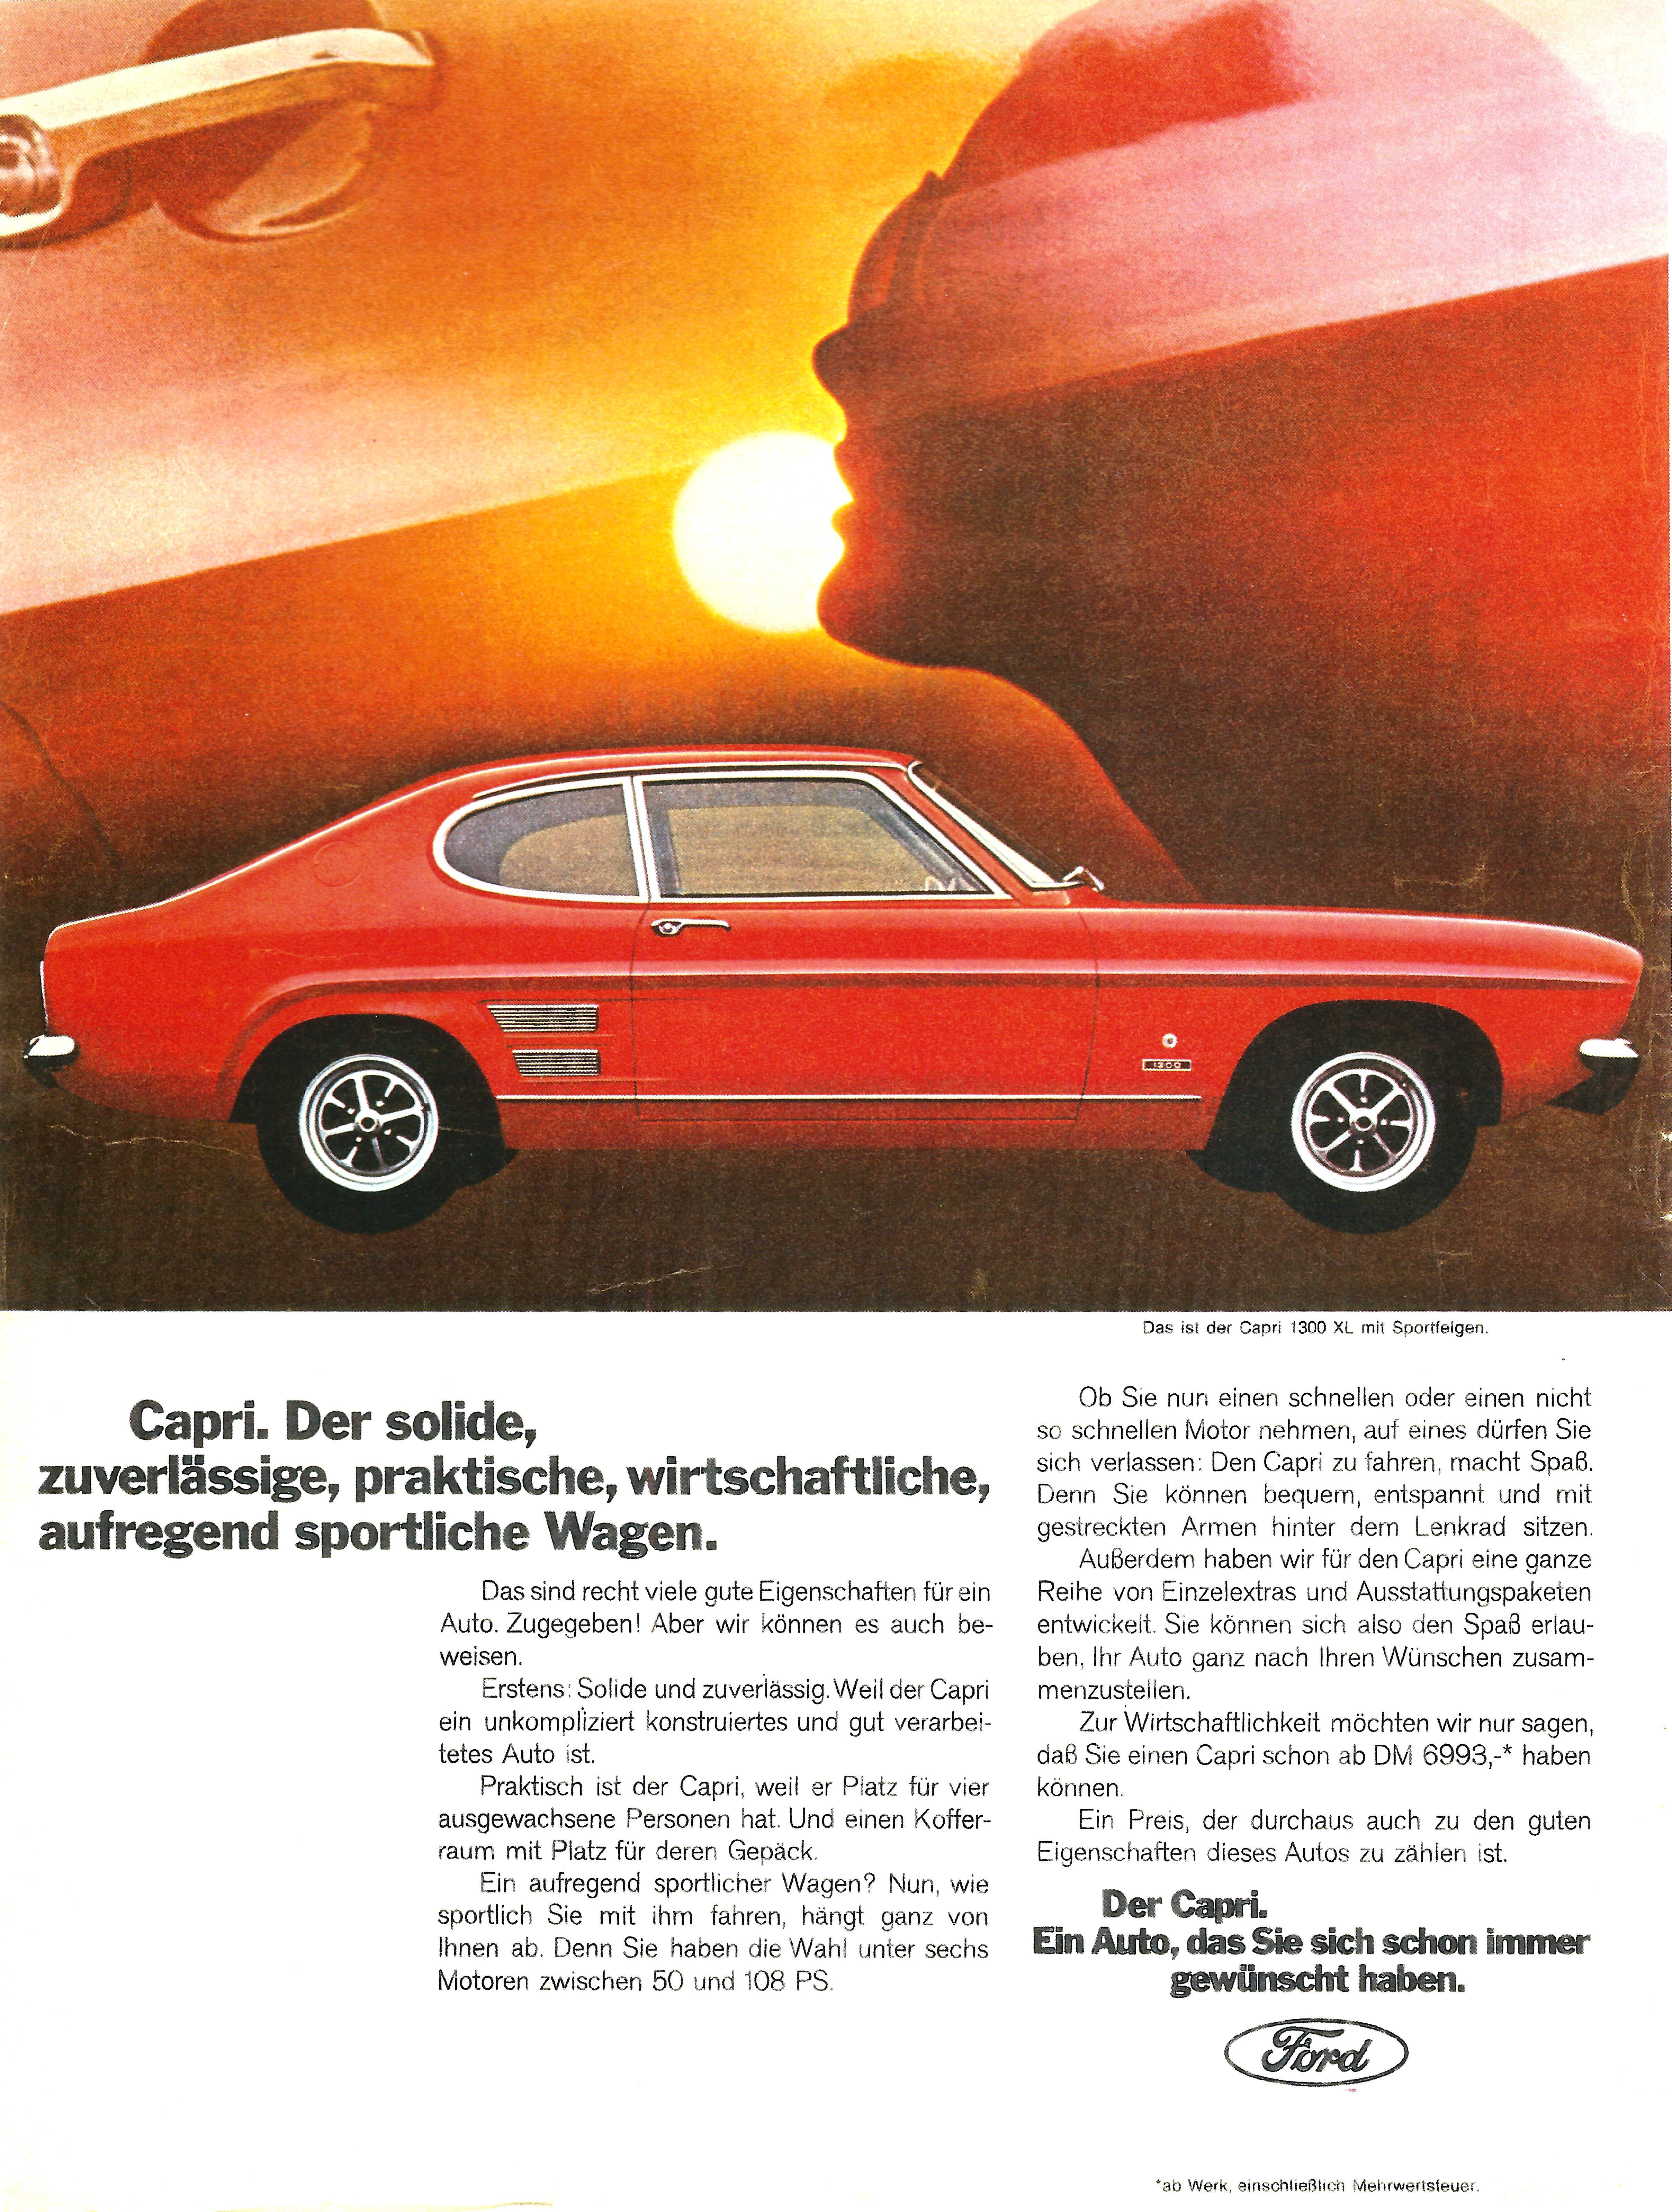 1969 Ford Capri 1300 XL (Germany)